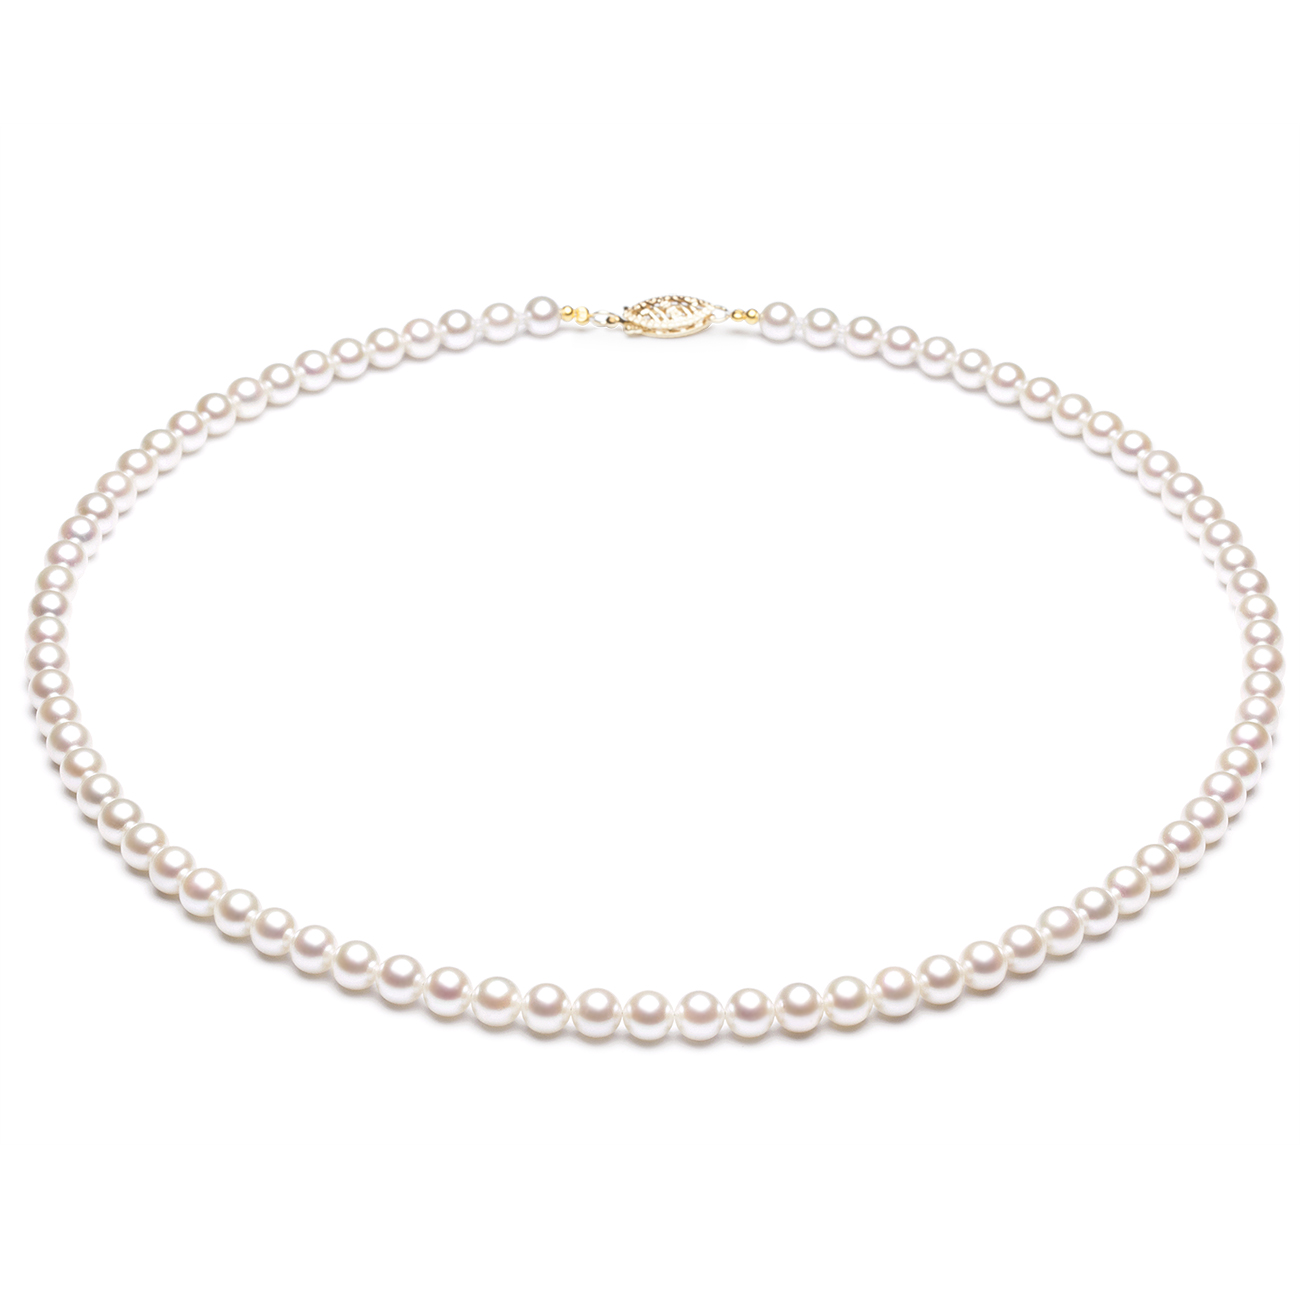 Collier perles Japon - Perle de culture de mer blanche - 4.5/5mm